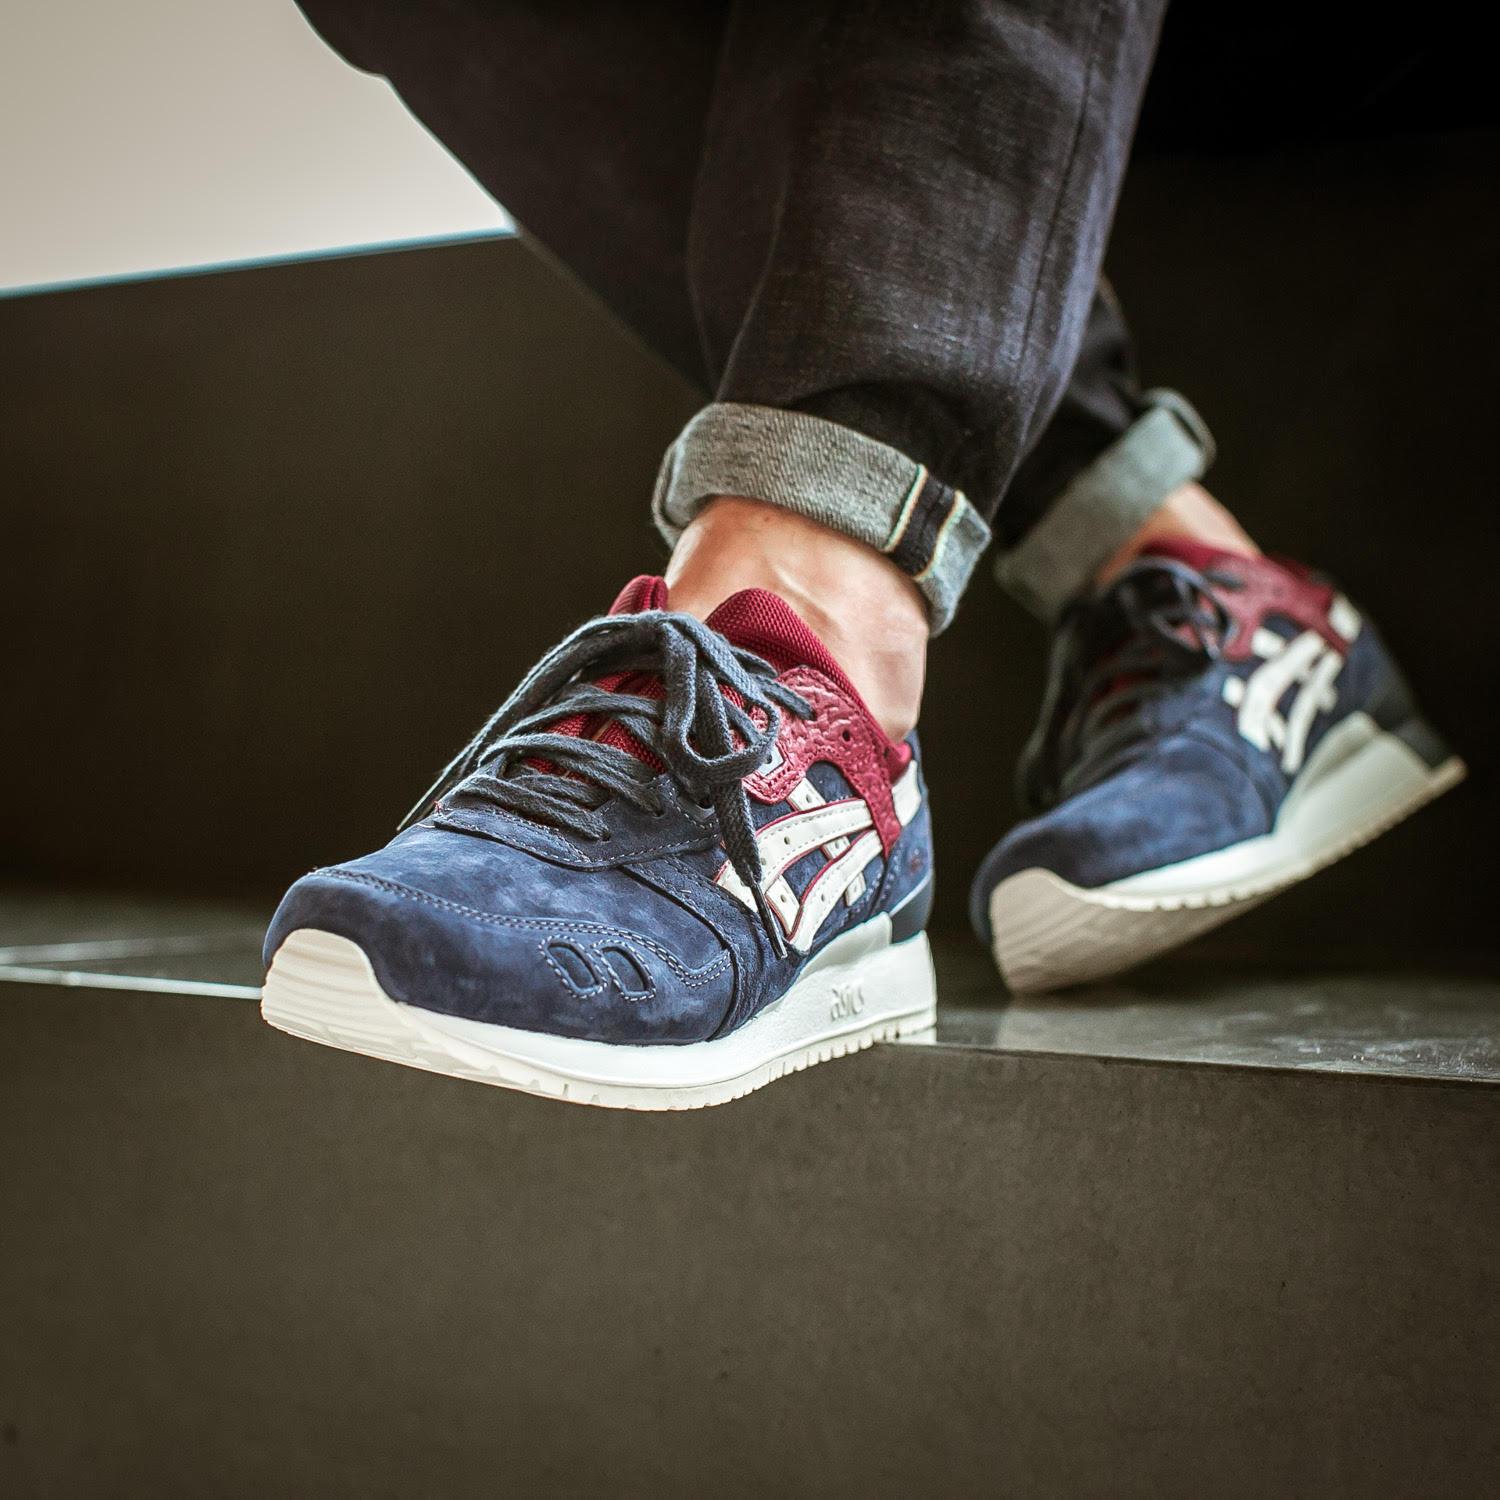 Asics Gel-Lyte III India Ink Toe